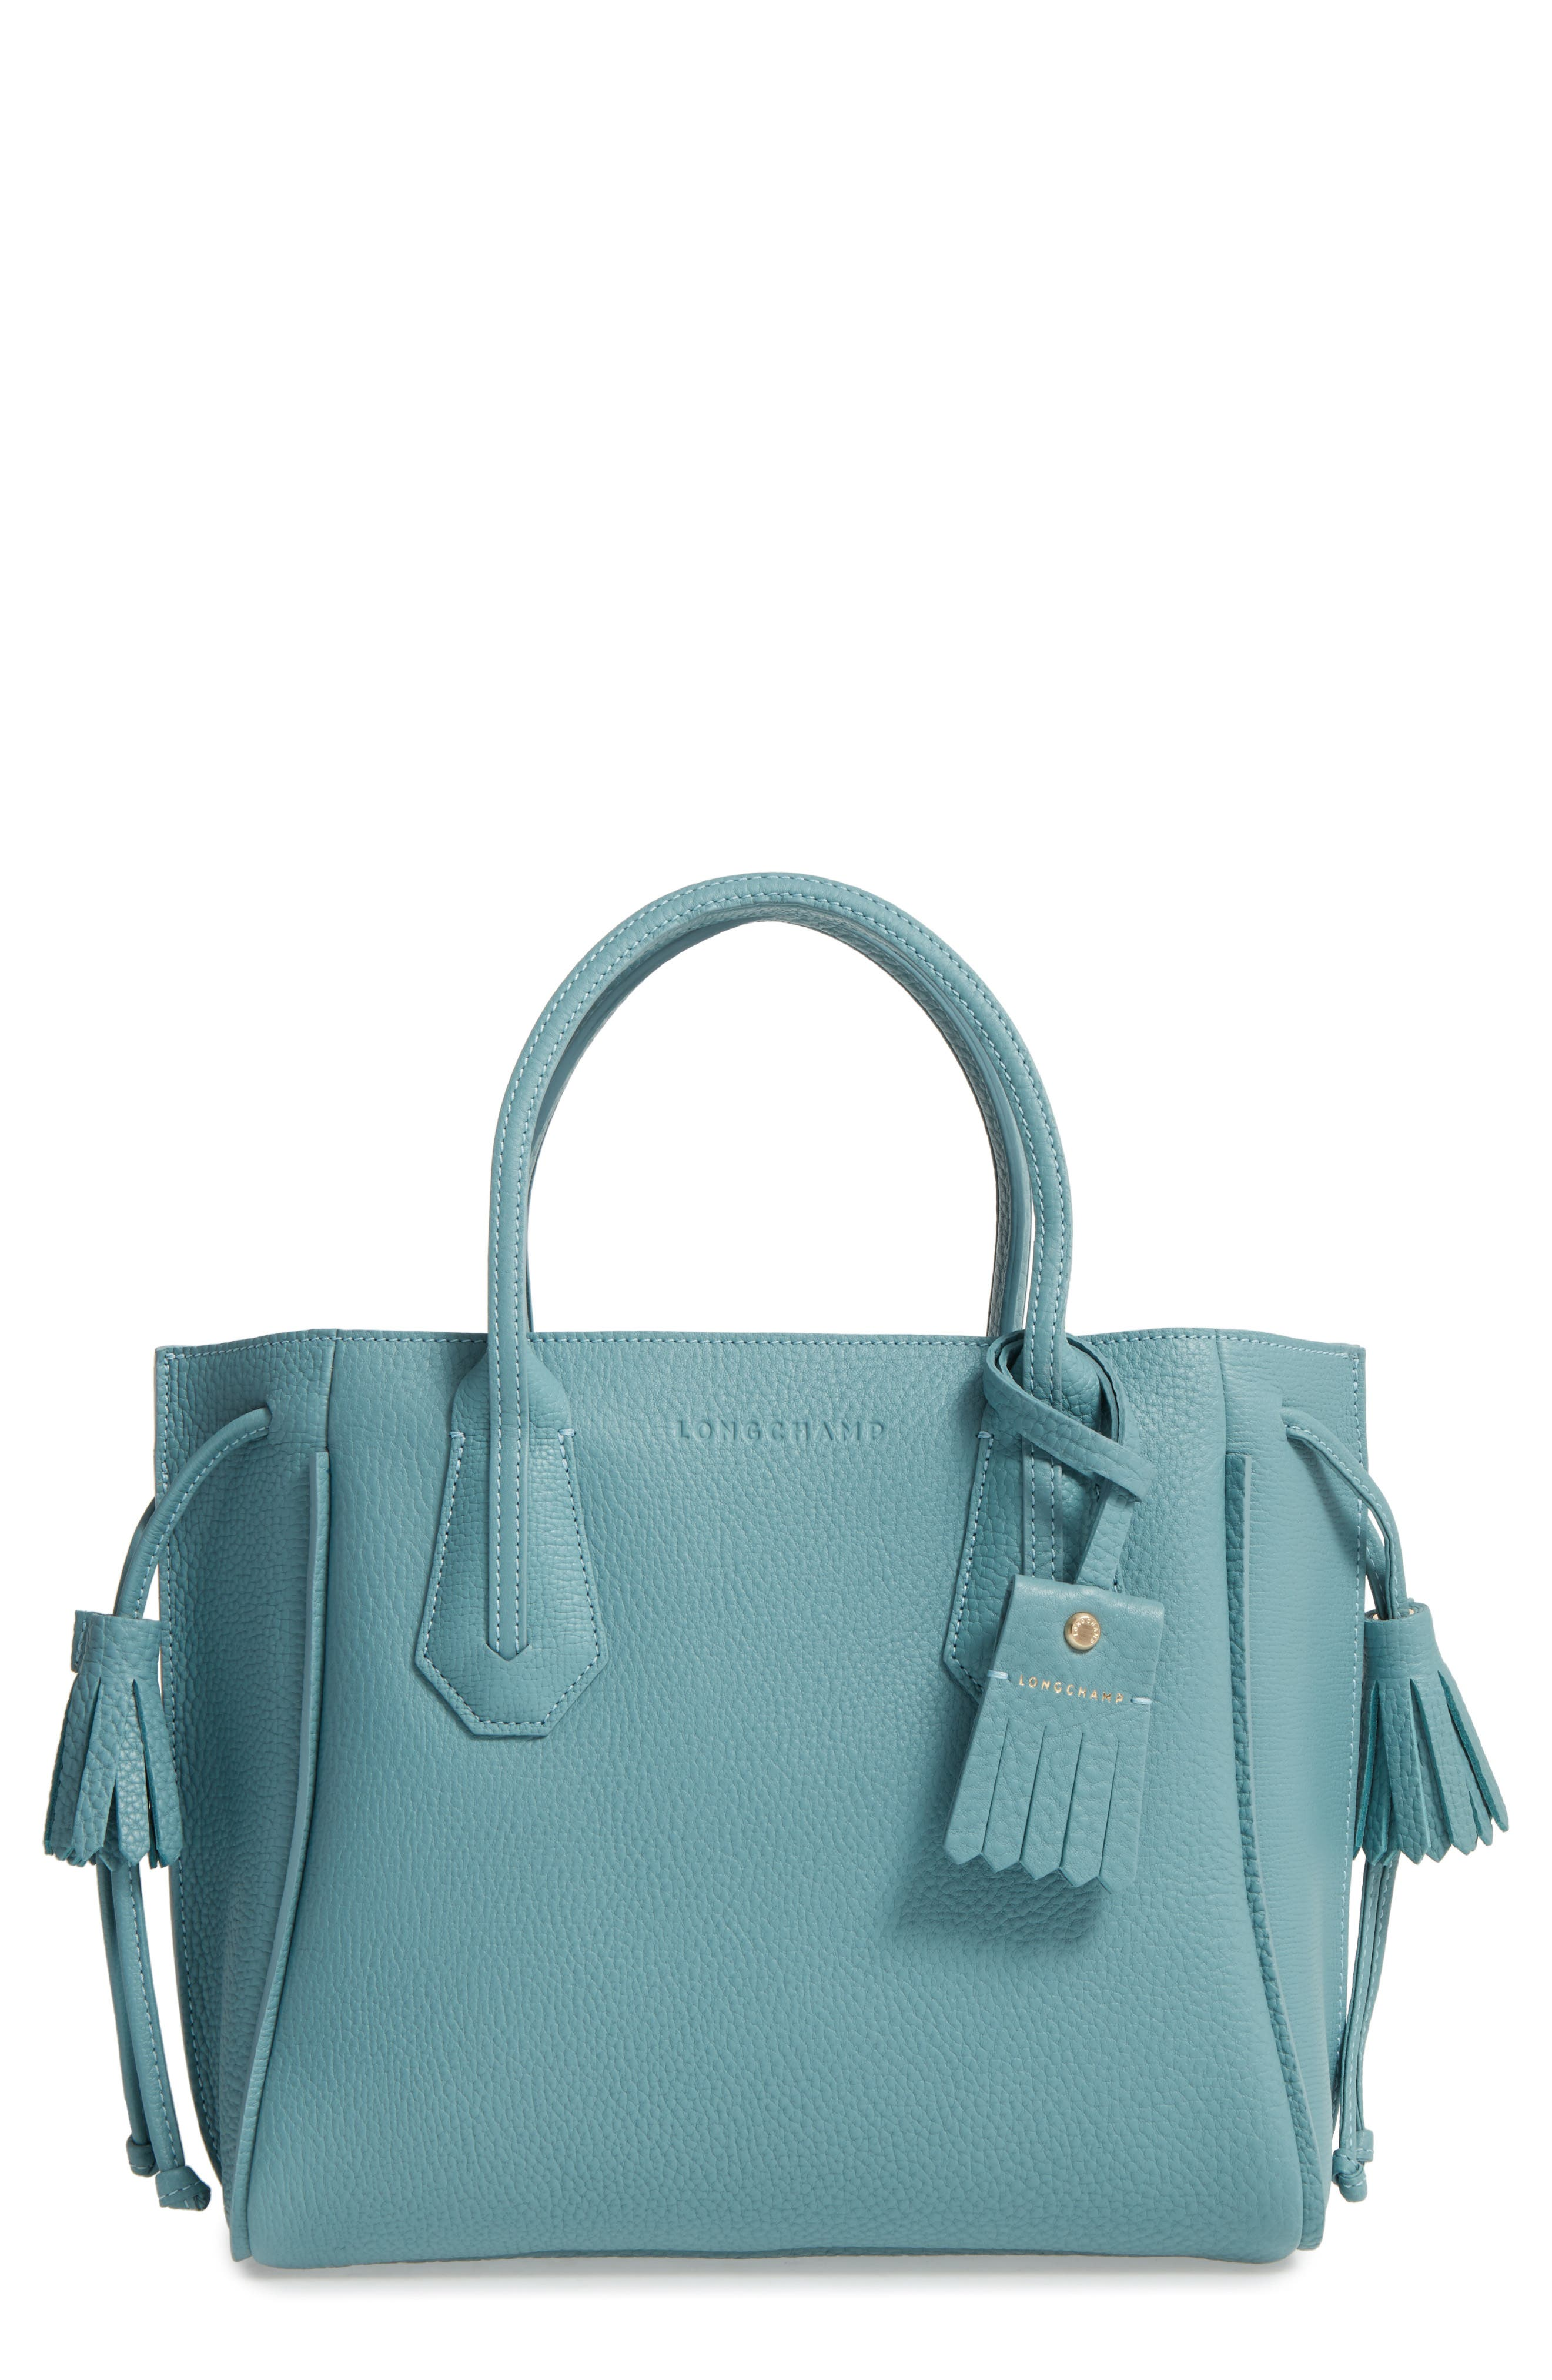 Alternate Image 1 Selected - Longchamp 'Small Penelope' Leather Tote